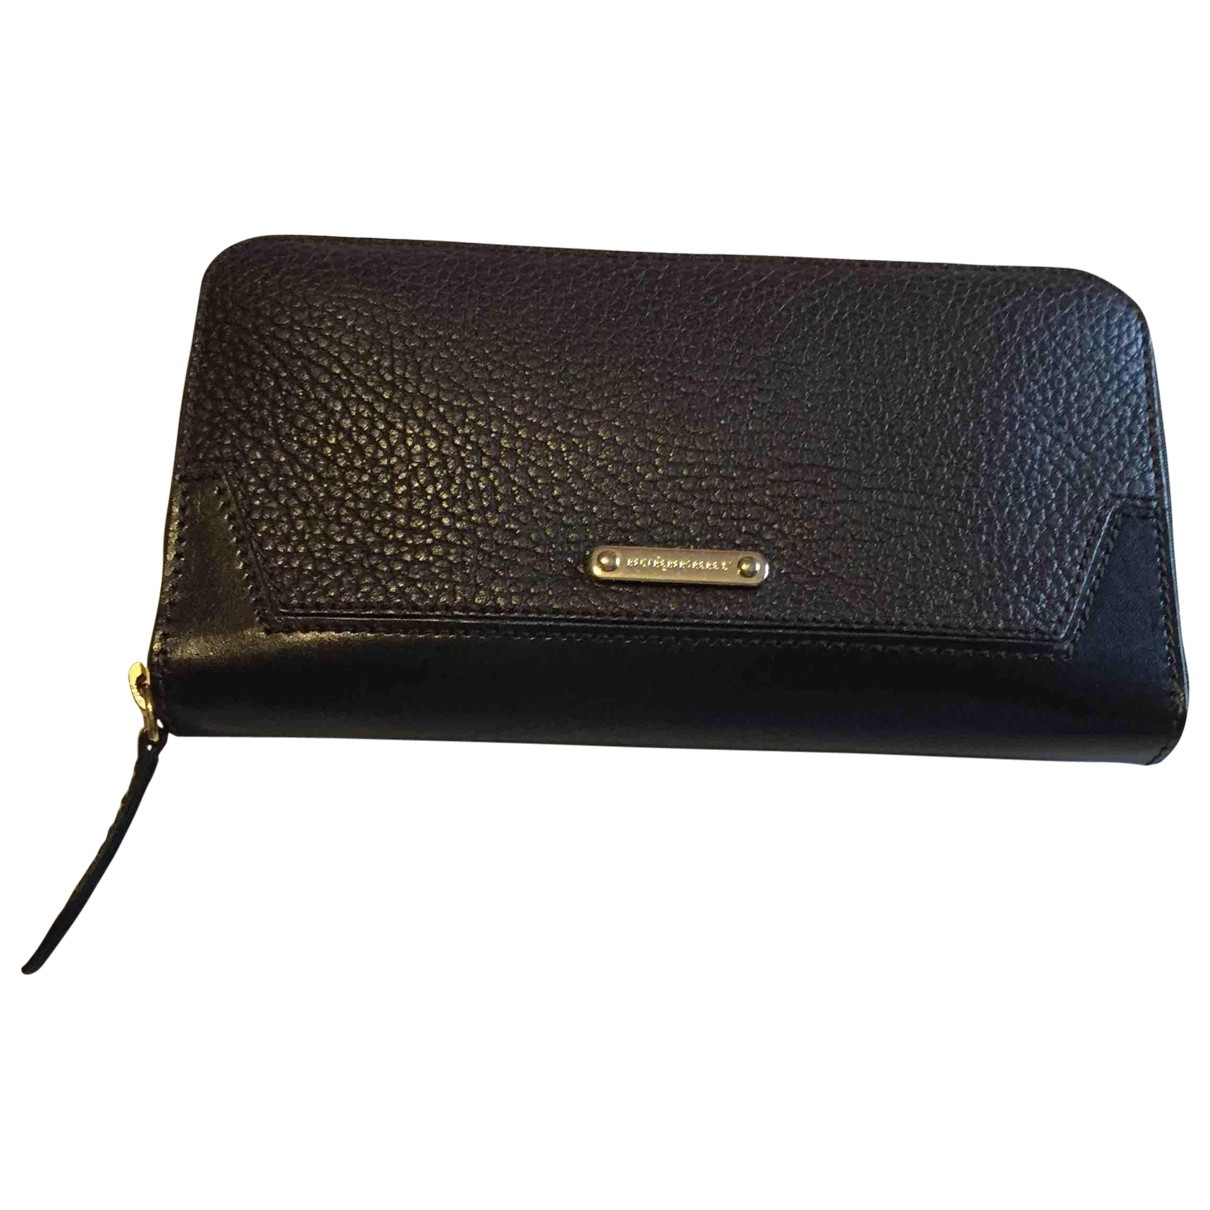 Burberry \N Black Leather wallet for Women \N